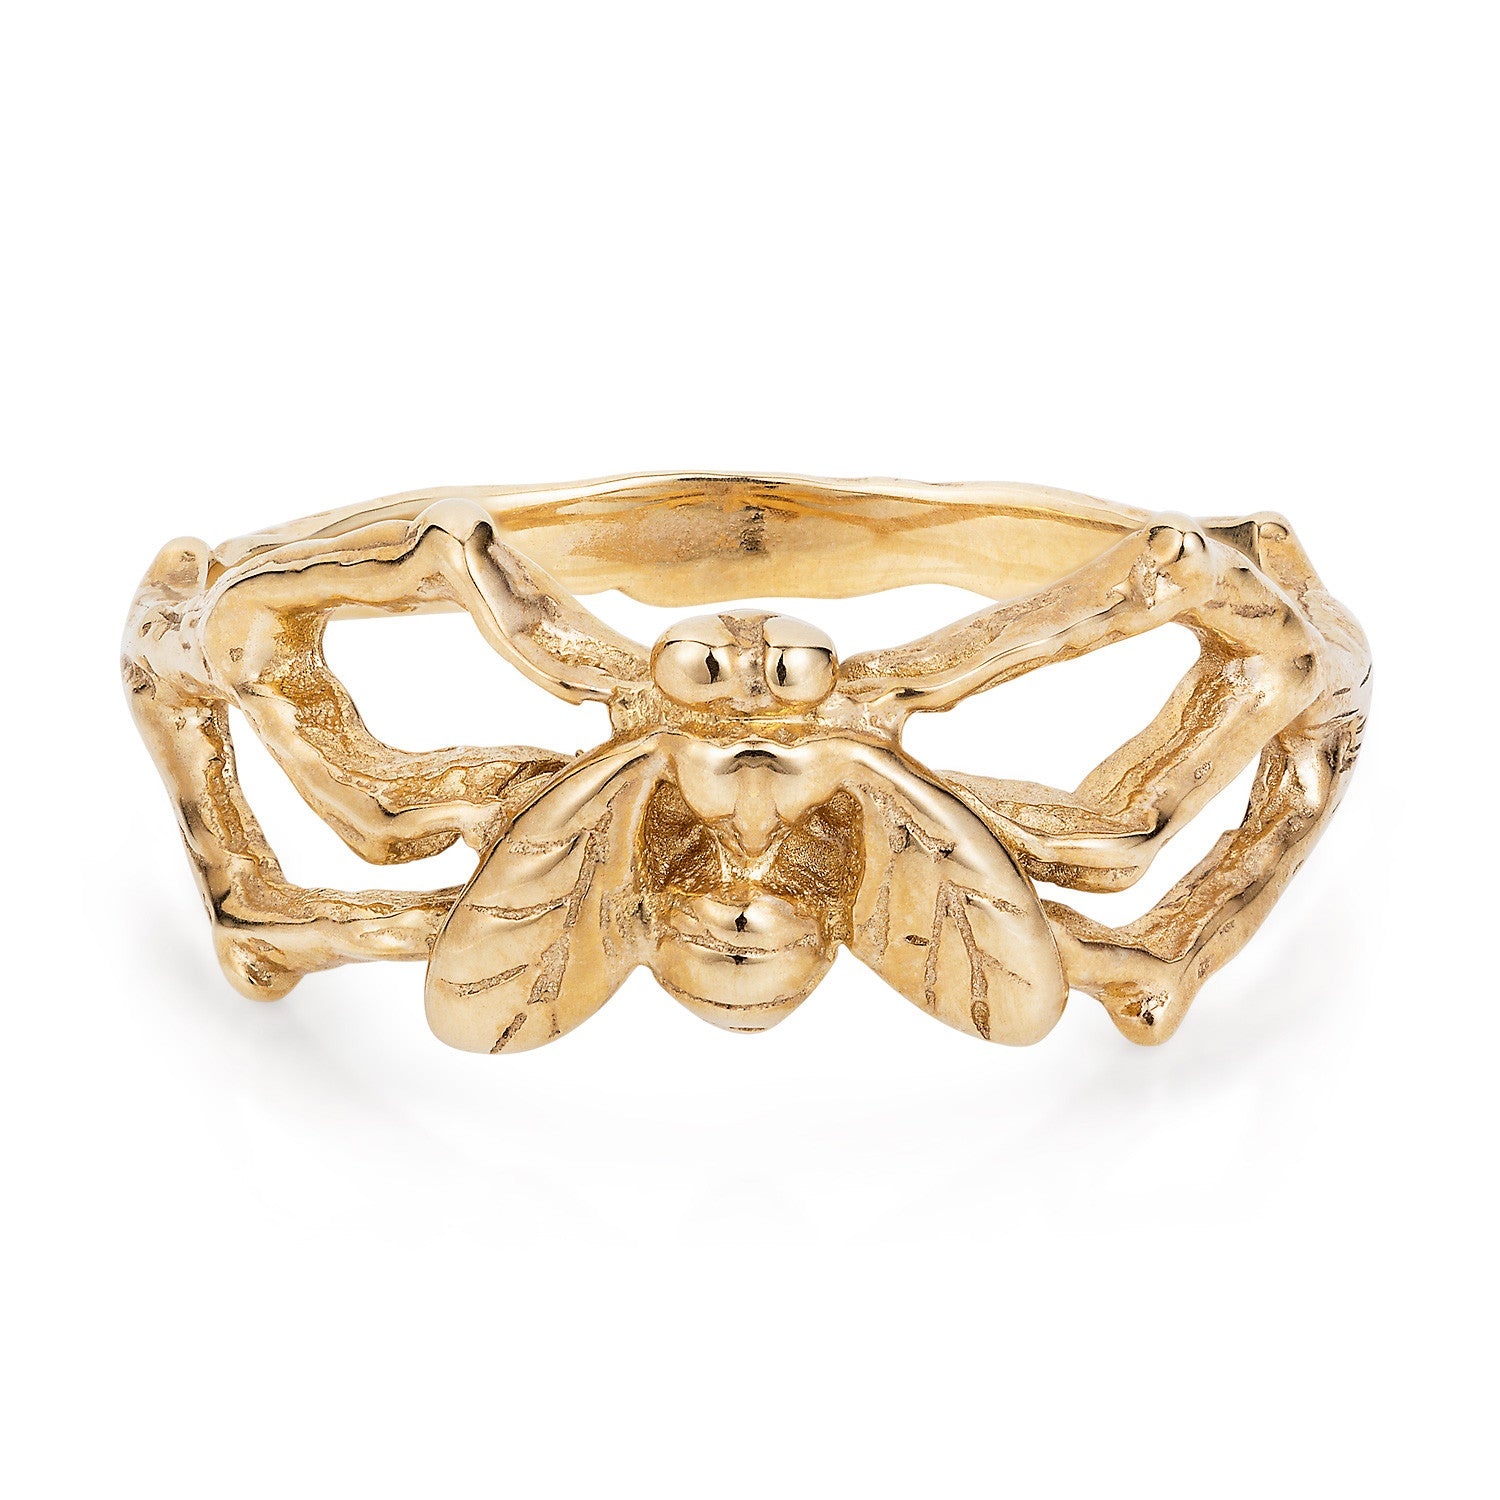 9ct Gold Little Fly Ring by Yasmin Everley